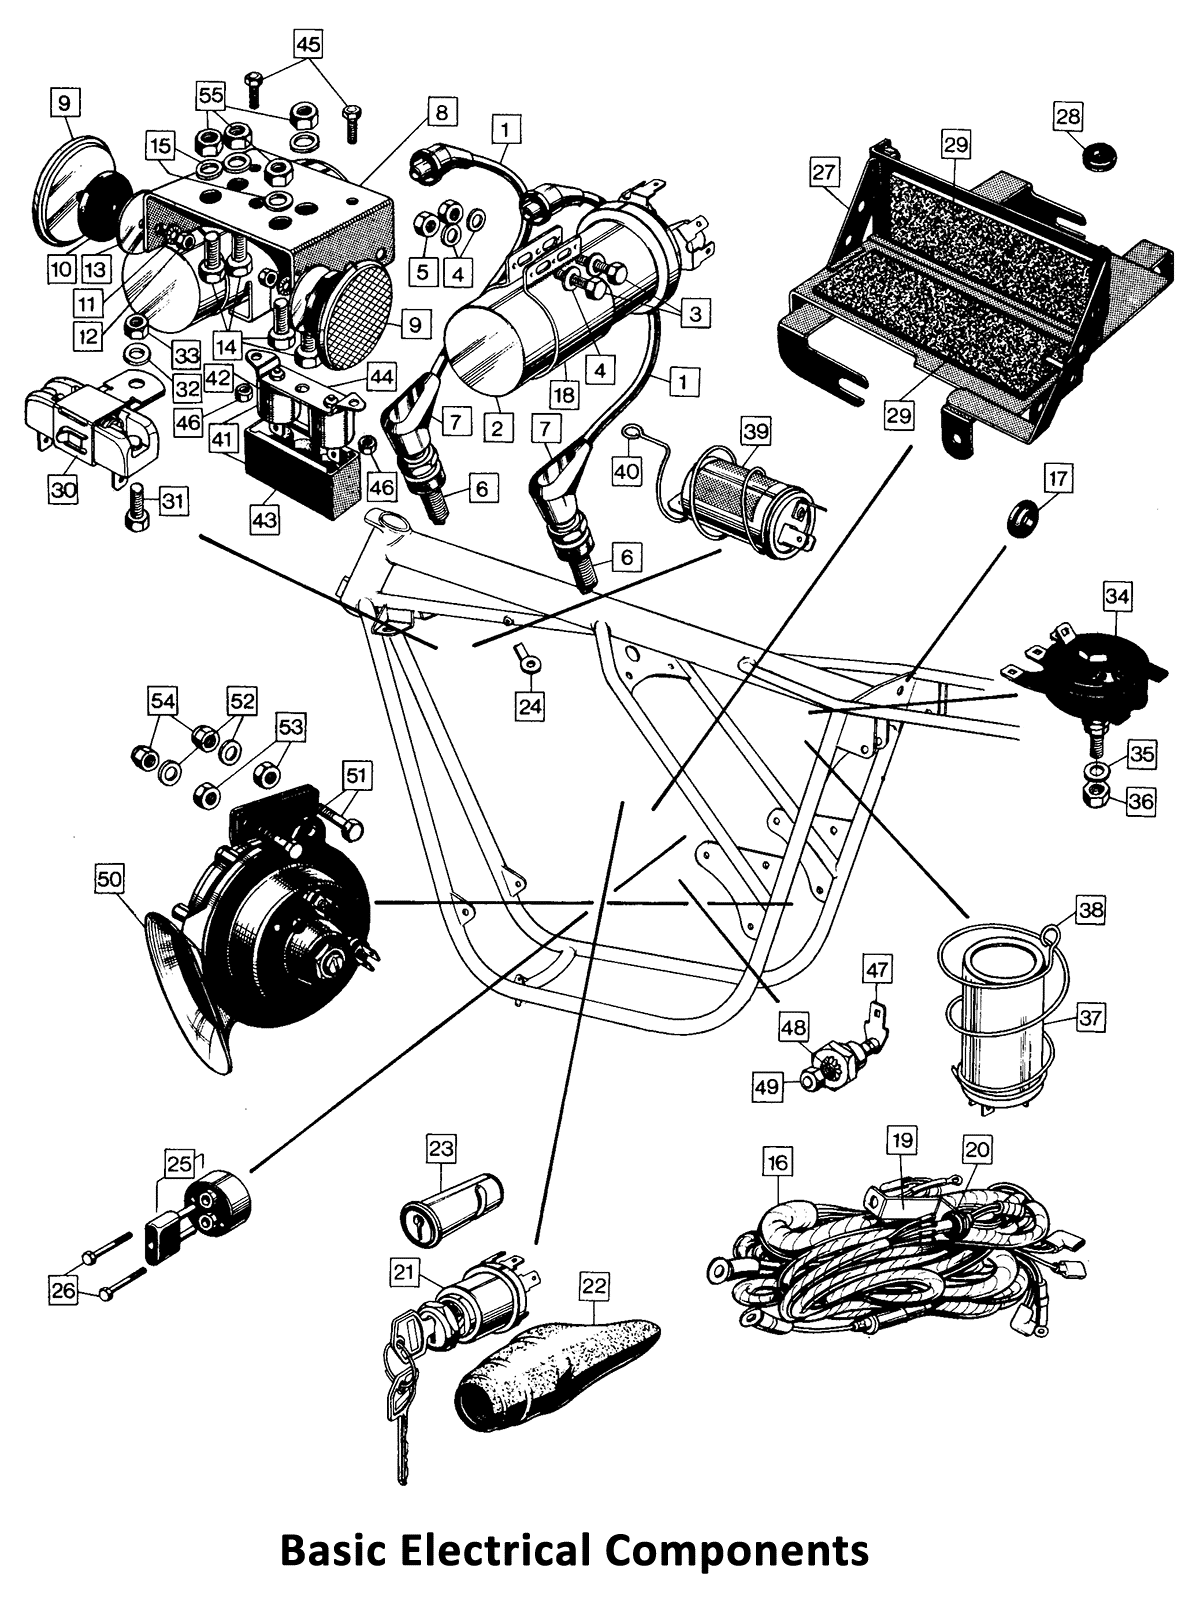 1971 Norton Commando 750 Basic Electrical Components